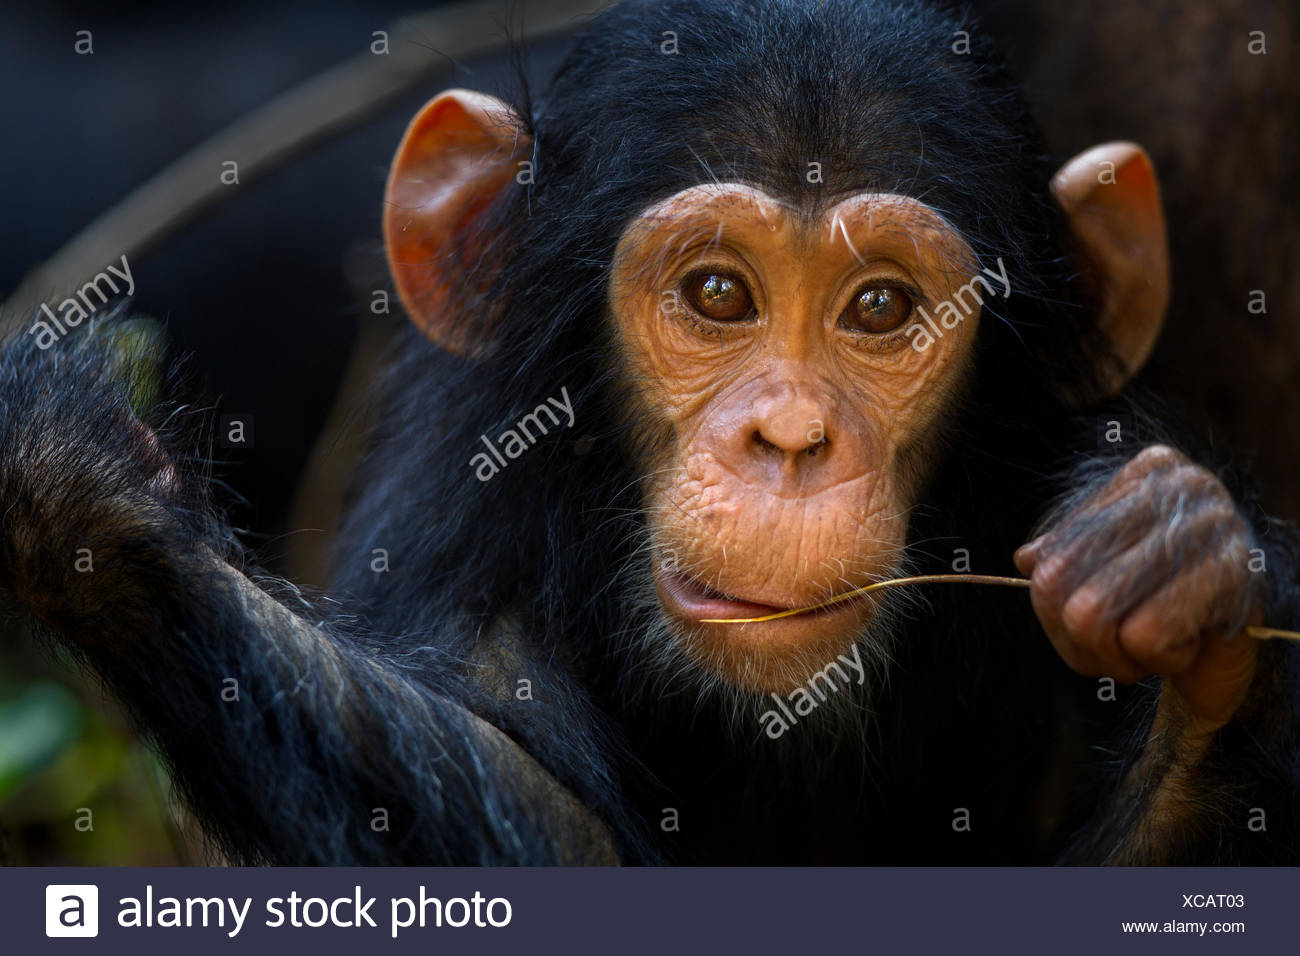 Eastern chimpanzee (Pan troglodytes schweinfurtheii) infant male 'Google' aged 2 years, portrait. Gombe National Park, Tanzania. - Stock Image